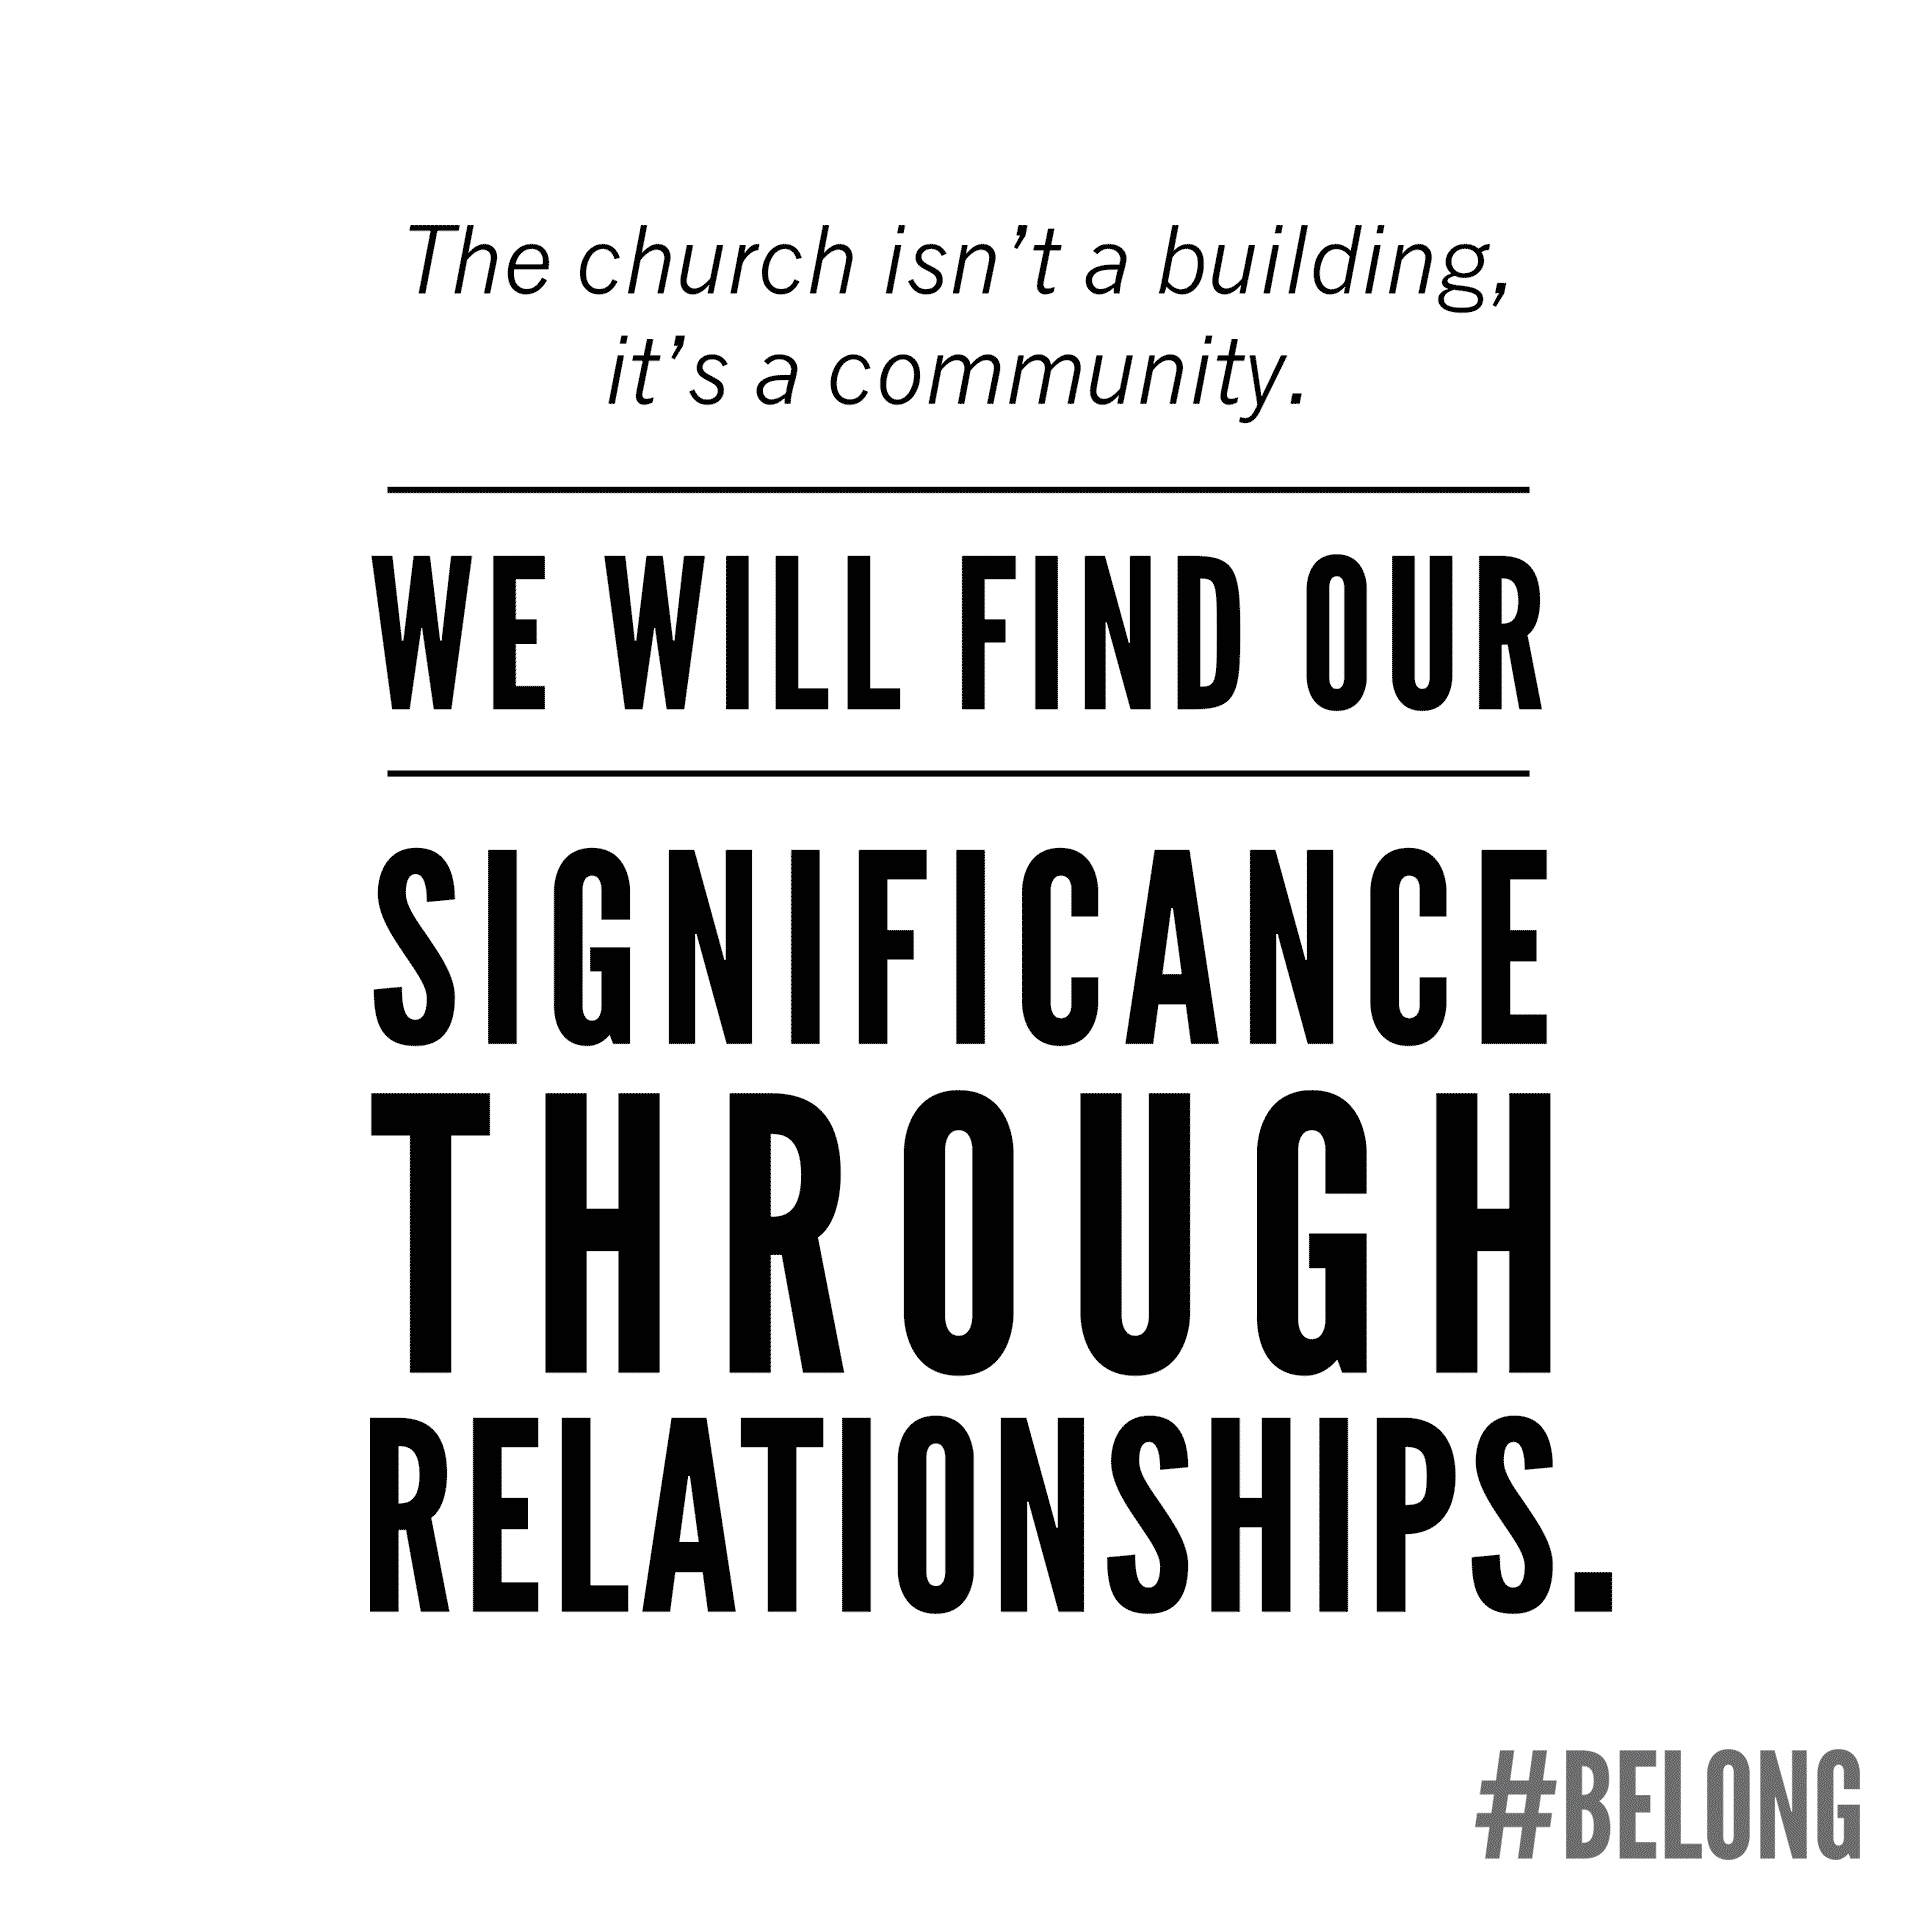 HASHTAG-Belong.png